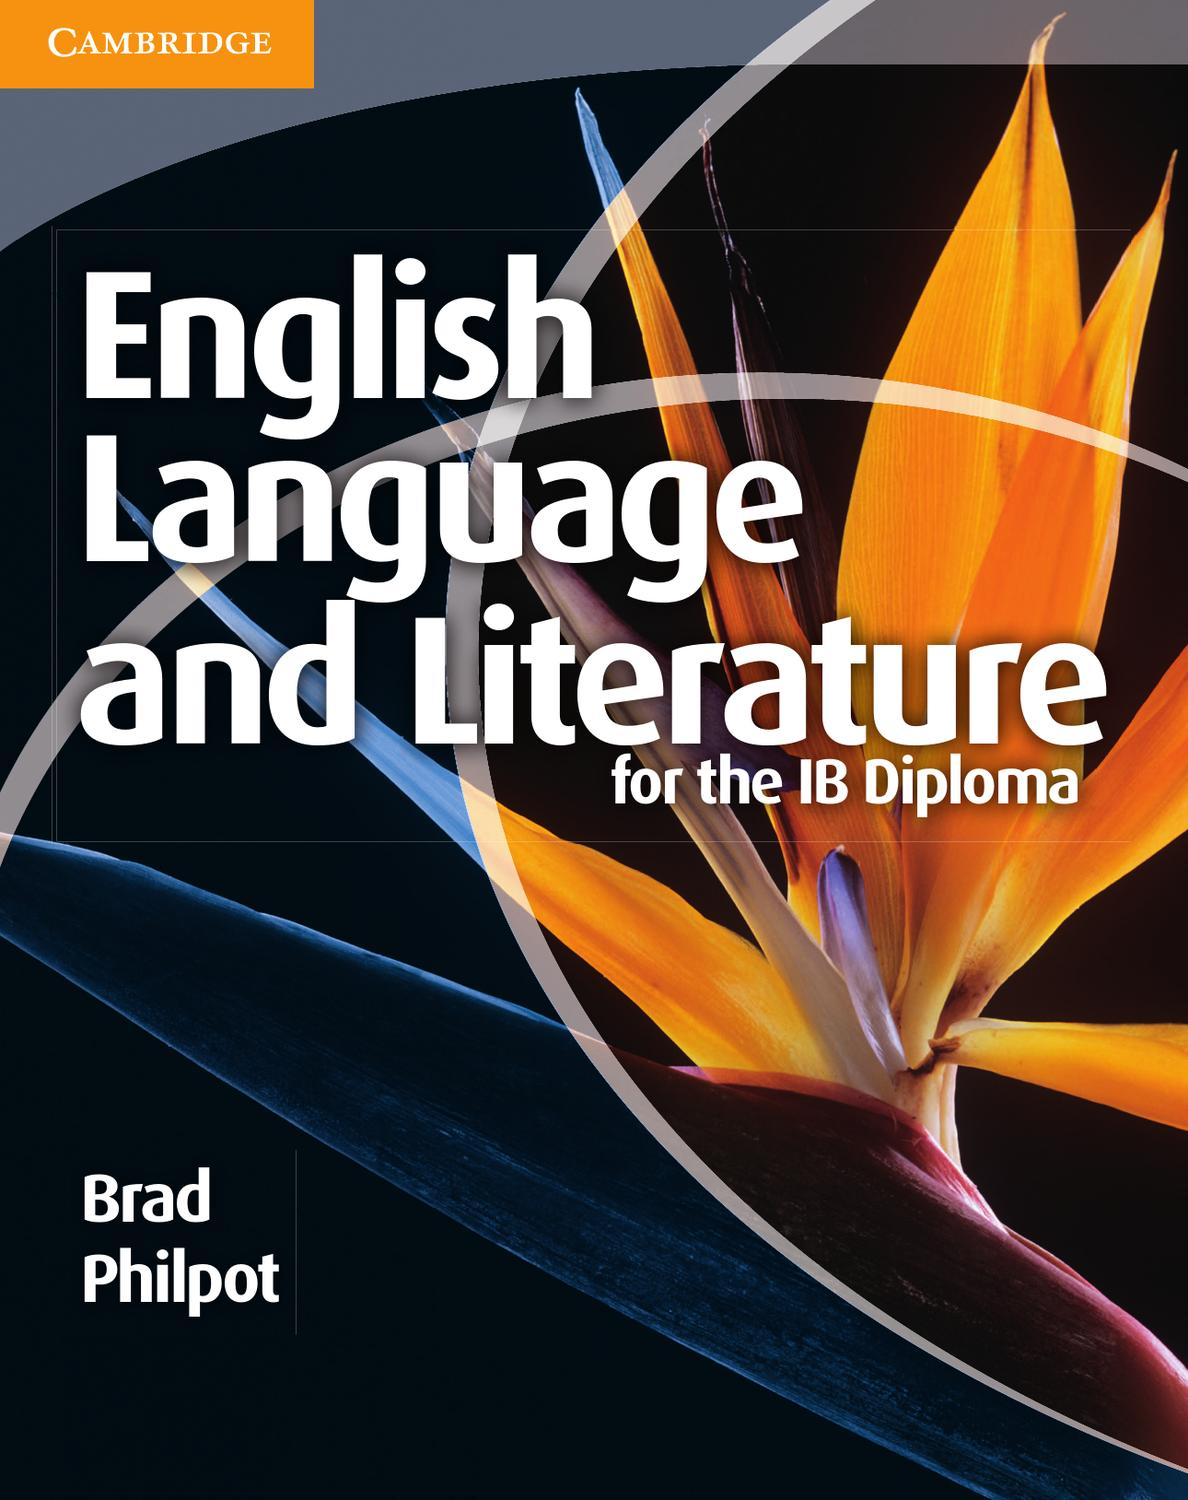 English Language And Literature For The Ib Diploma By Cambridge  English Language And Literature For The Ib Diploma By Cambridge University  Press Education  Issuu